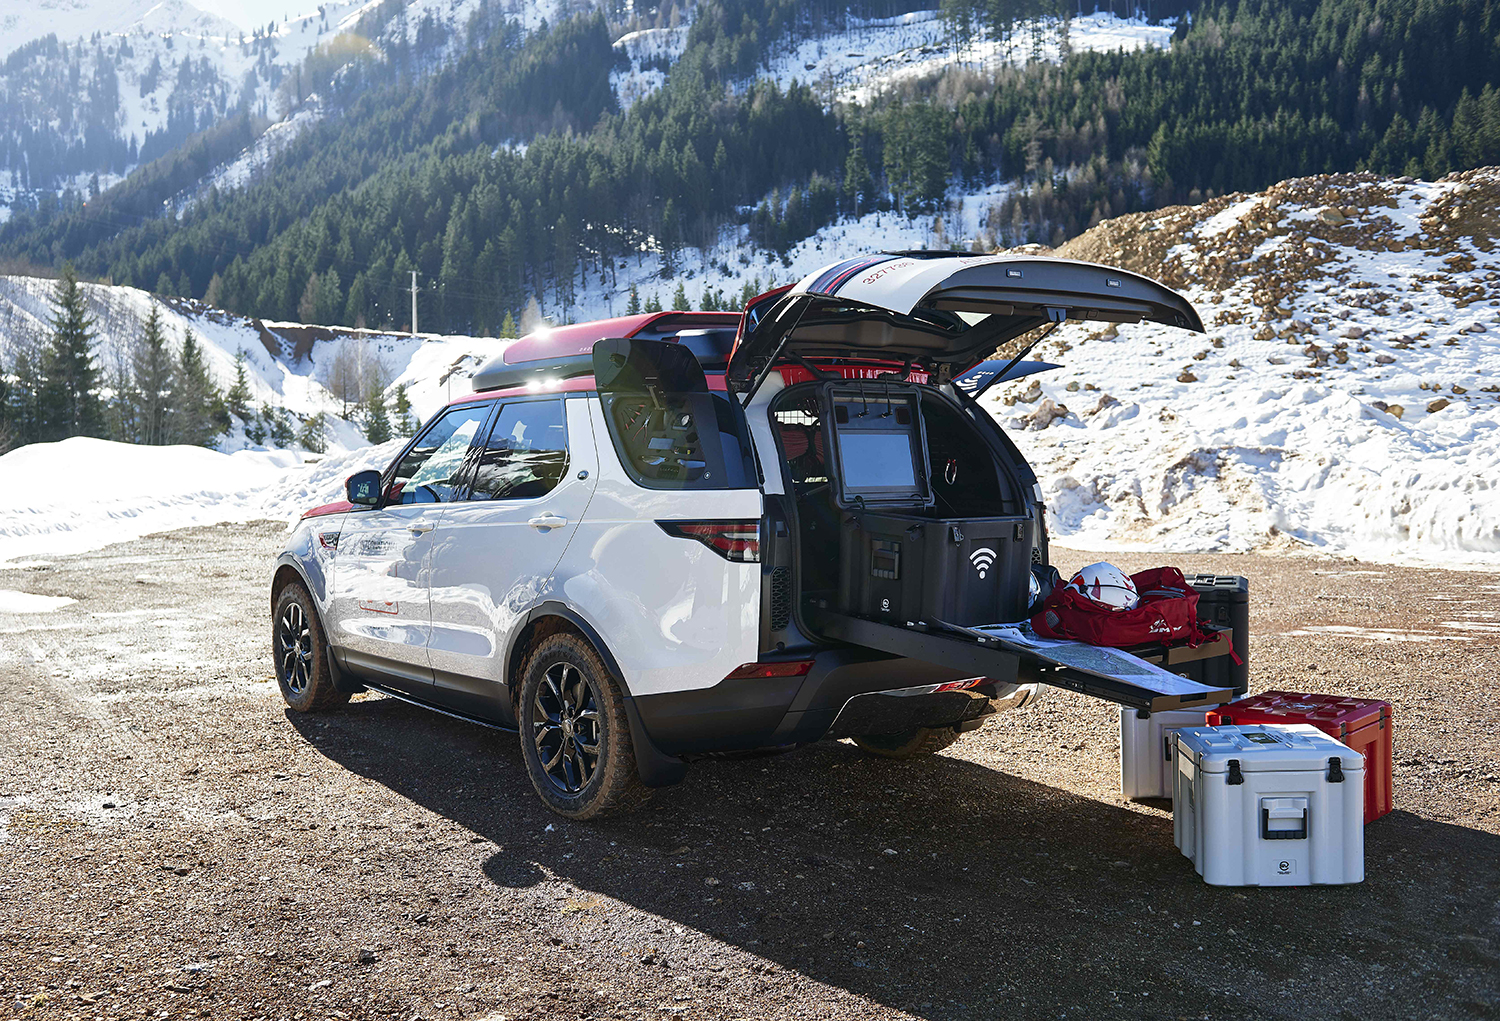 Search & Rescue Land Rover Deploys Drone From Roof